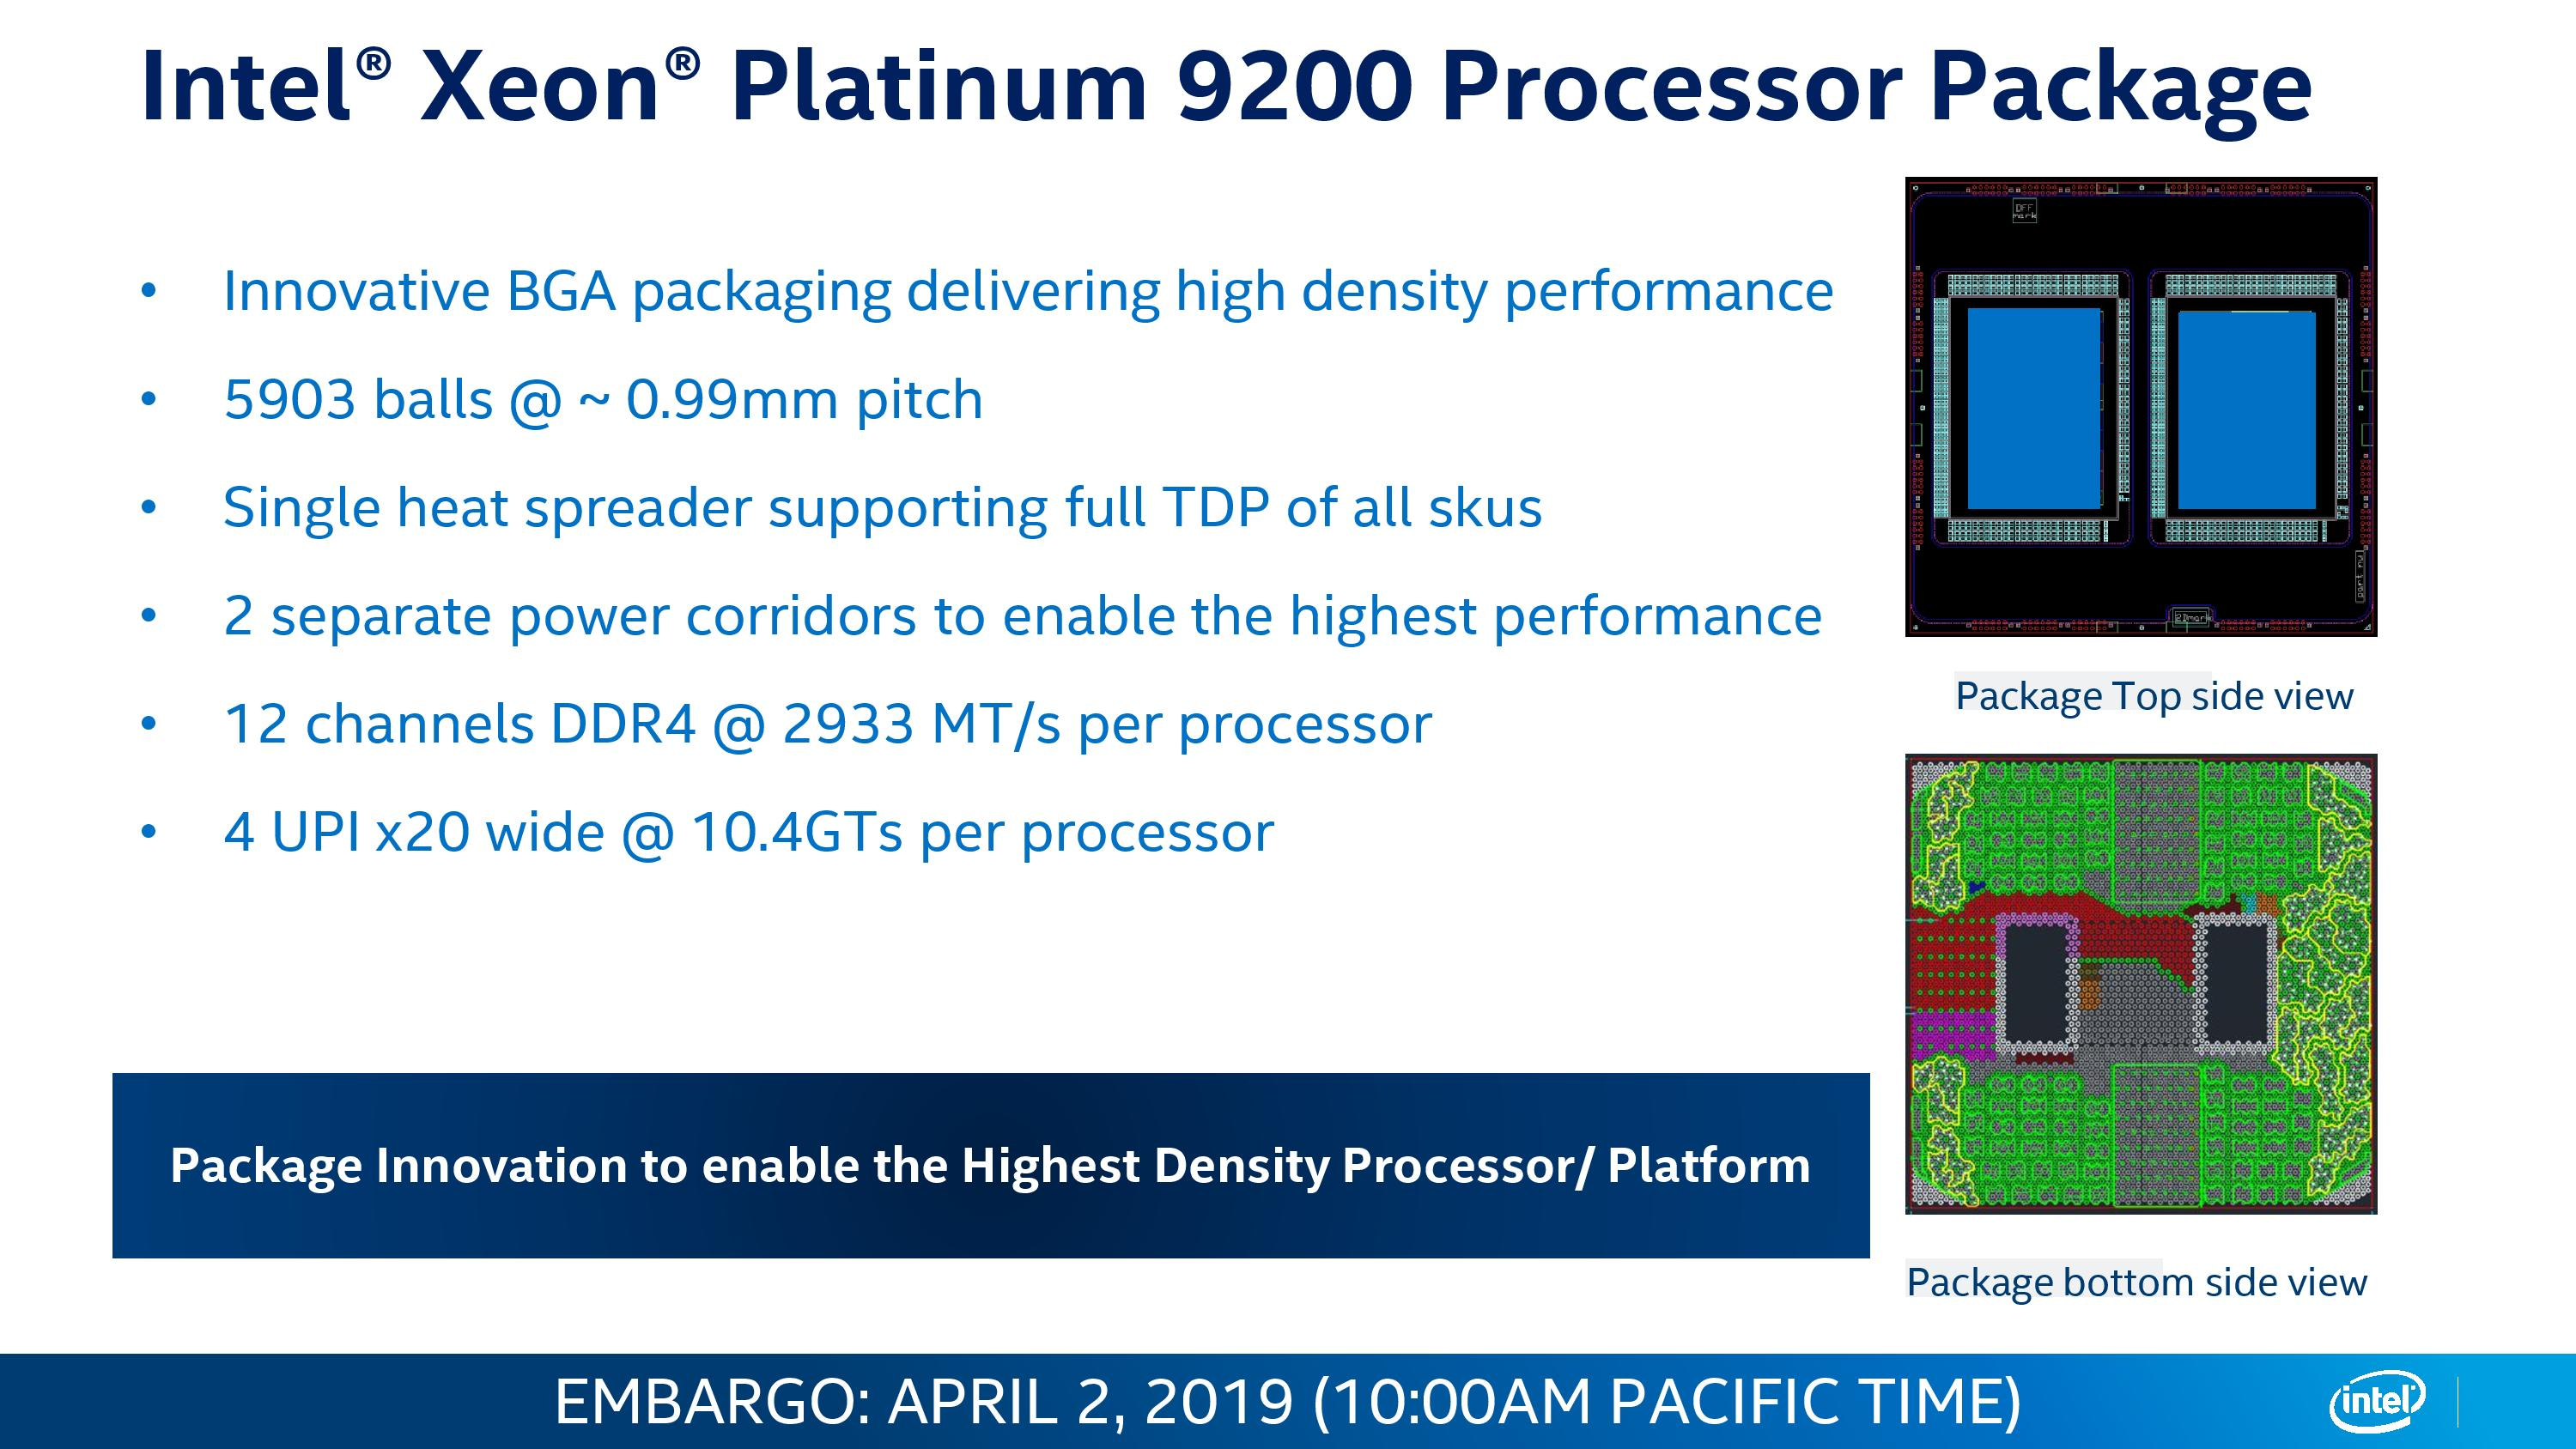 Hands on with the 56-core Xeon Platinum 9200 CPU: Intel's